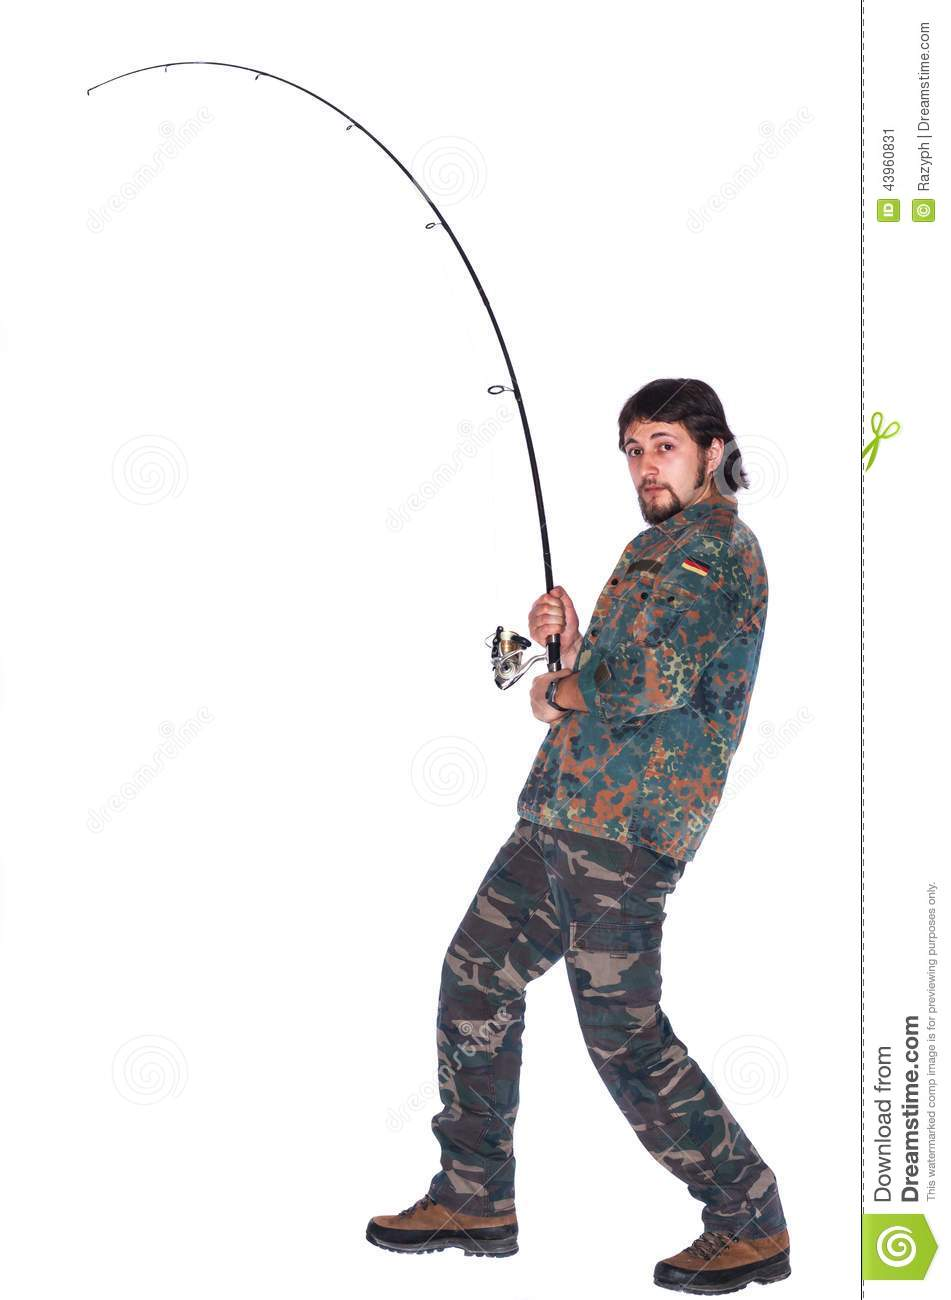 Fisherman throwing fishing rod stock image image 43960831 for How many fishing rods per person in texas